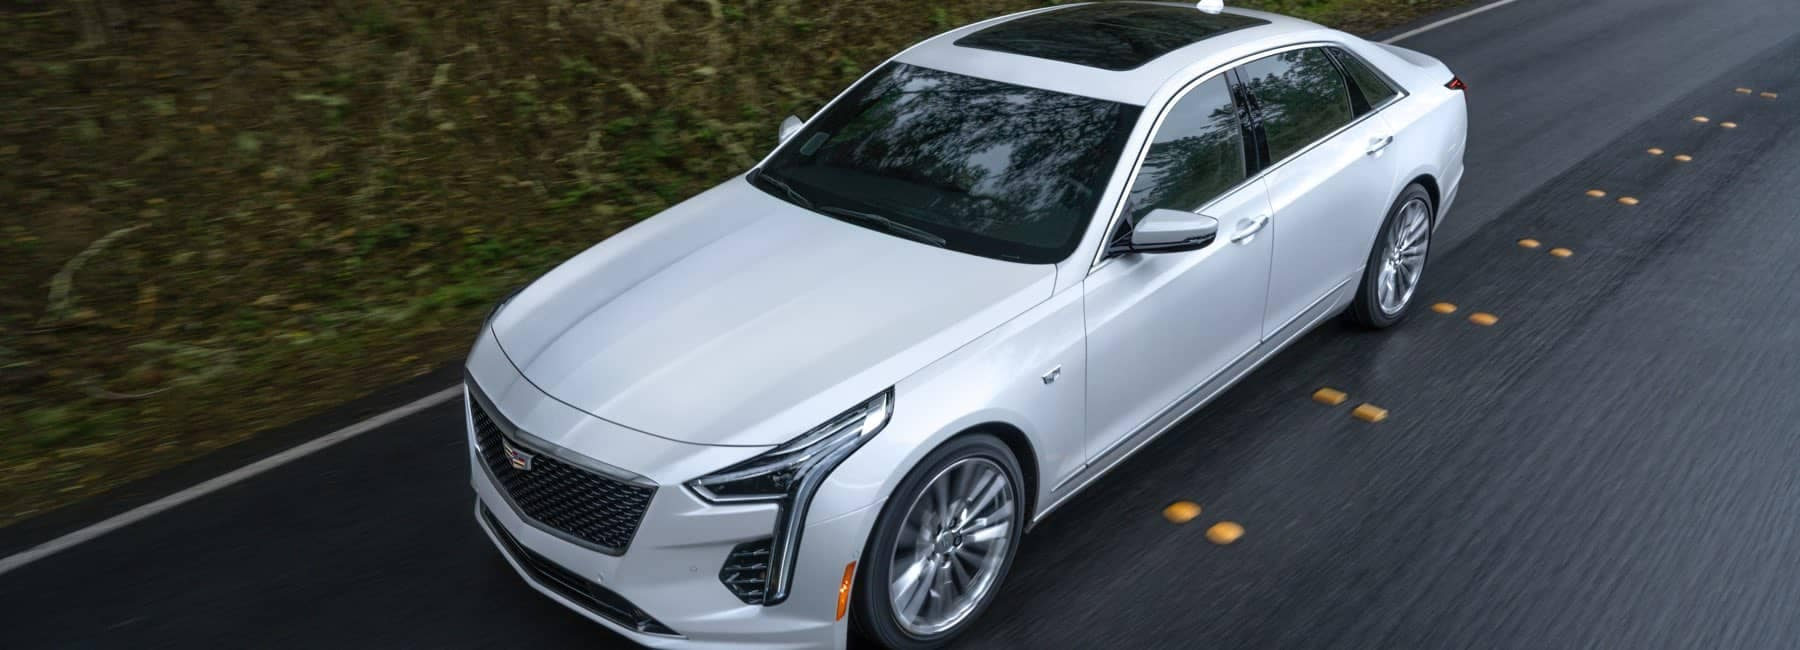 2020 Cadillac CT6 driving down country road